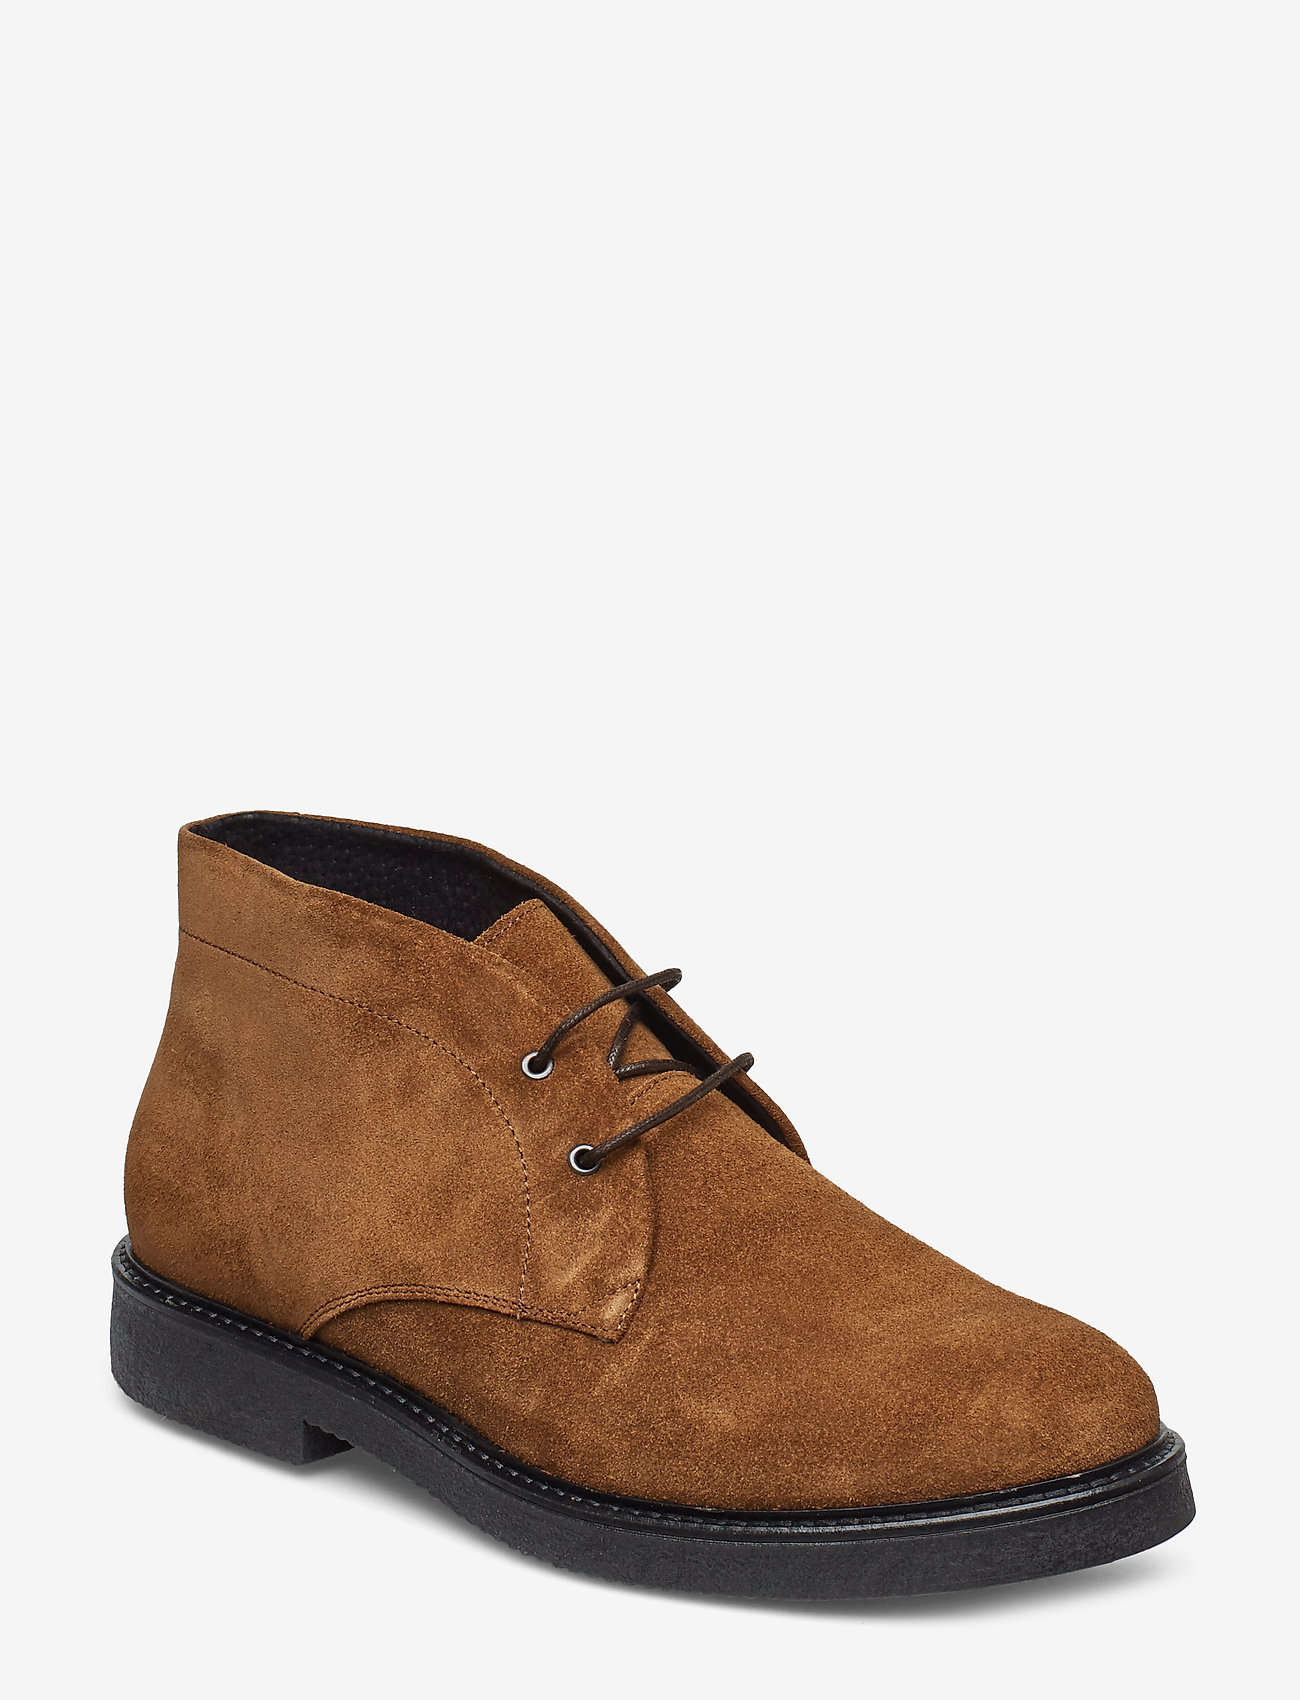 Shoe The Bear - HARDY S - desert boots - tobacco - 0